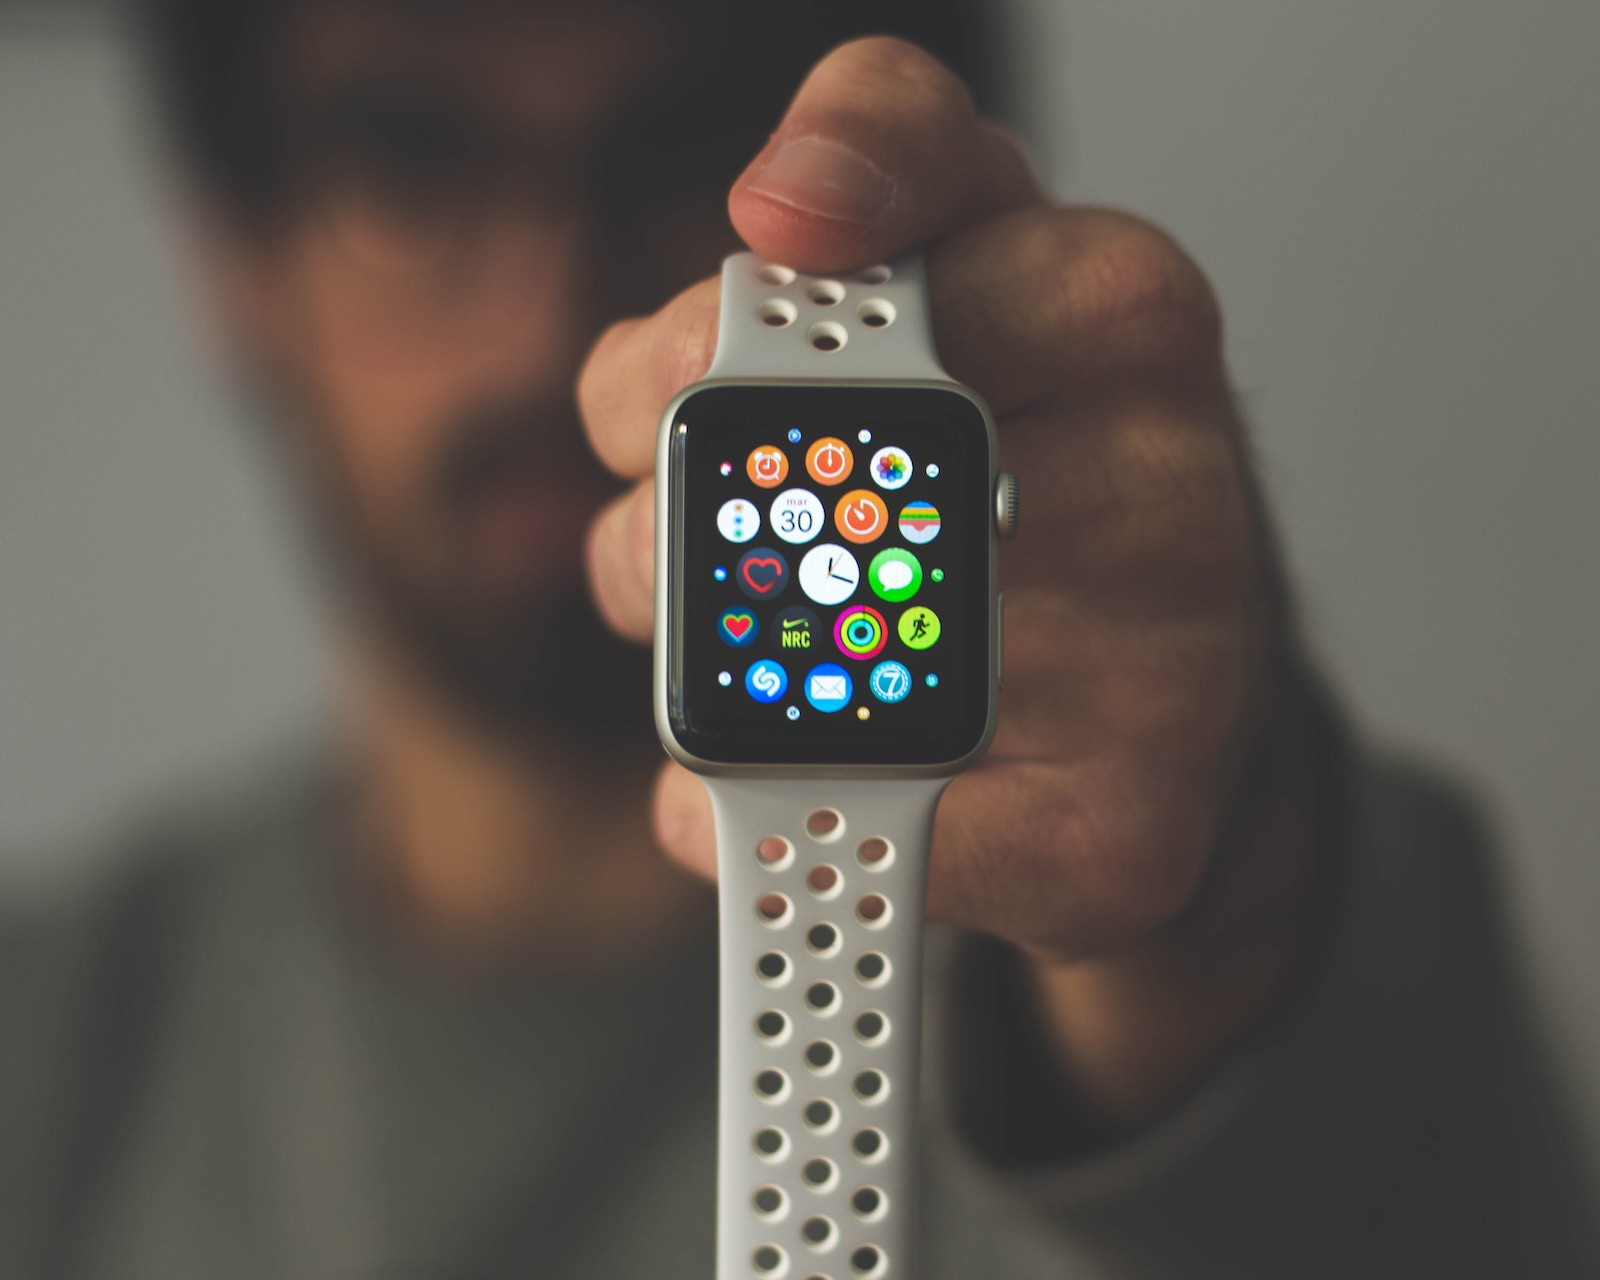 Daniel canibano 540359 unsplash holding an apple watch